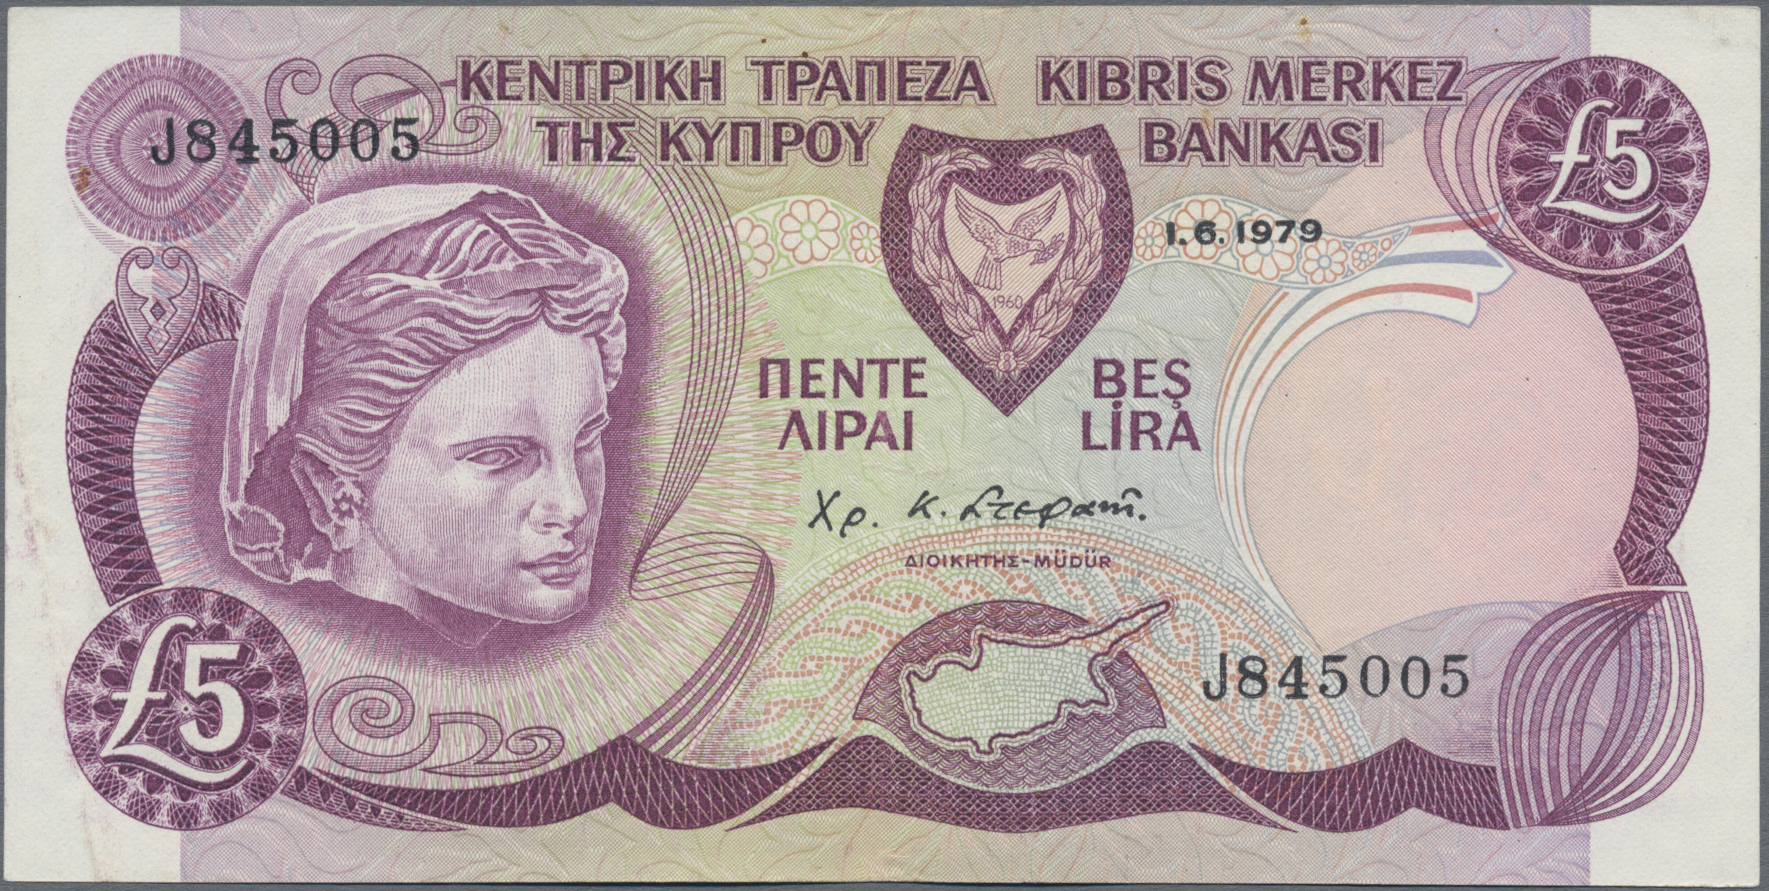 Lot 00161 - Cyprus / Zypern | Banknoten  -  Auktionshaus Christoph Gärtner GmbH & Co. KG Sale #48 The Banknotes